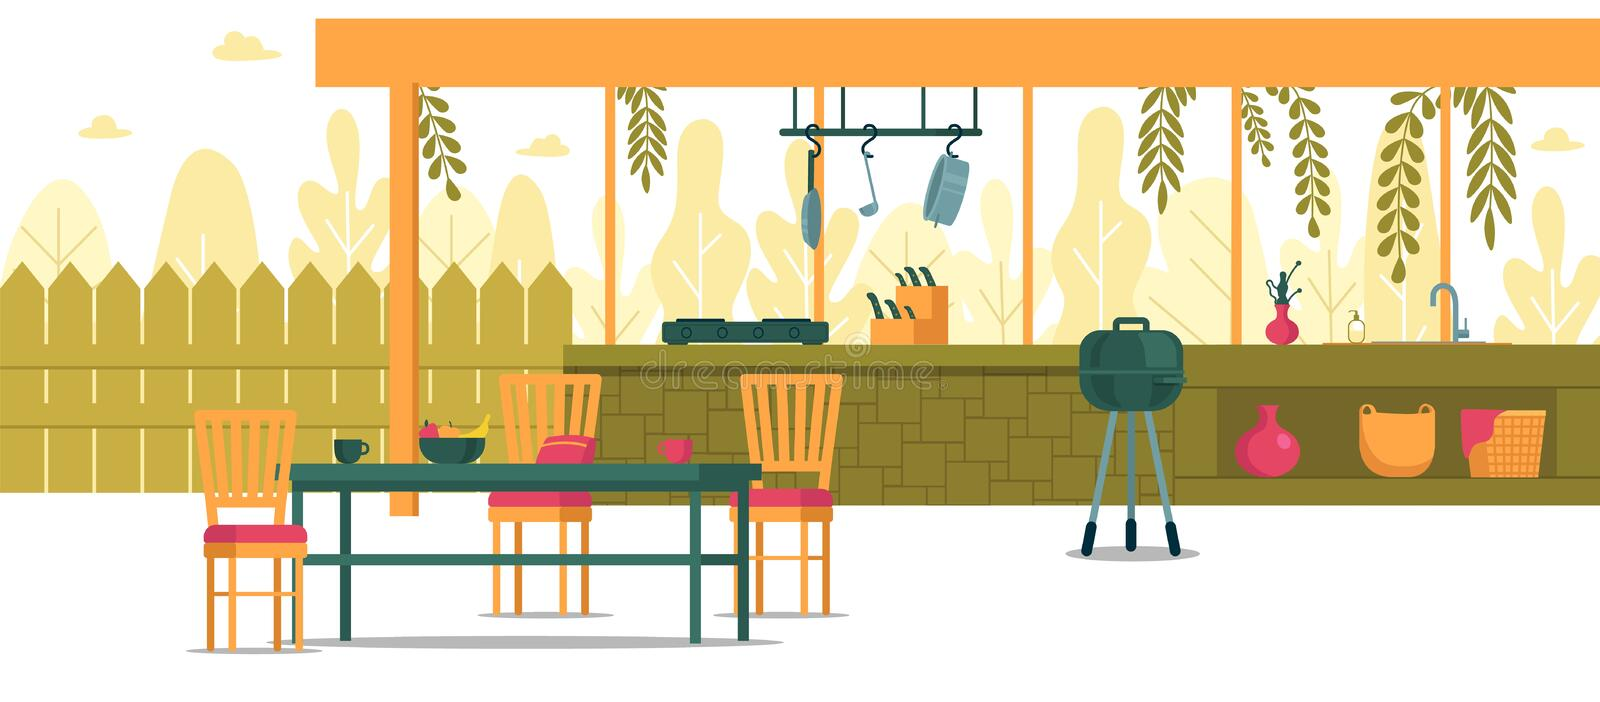 Place for Cooking in Backyard, Cartoon Banner. royalty free illustration